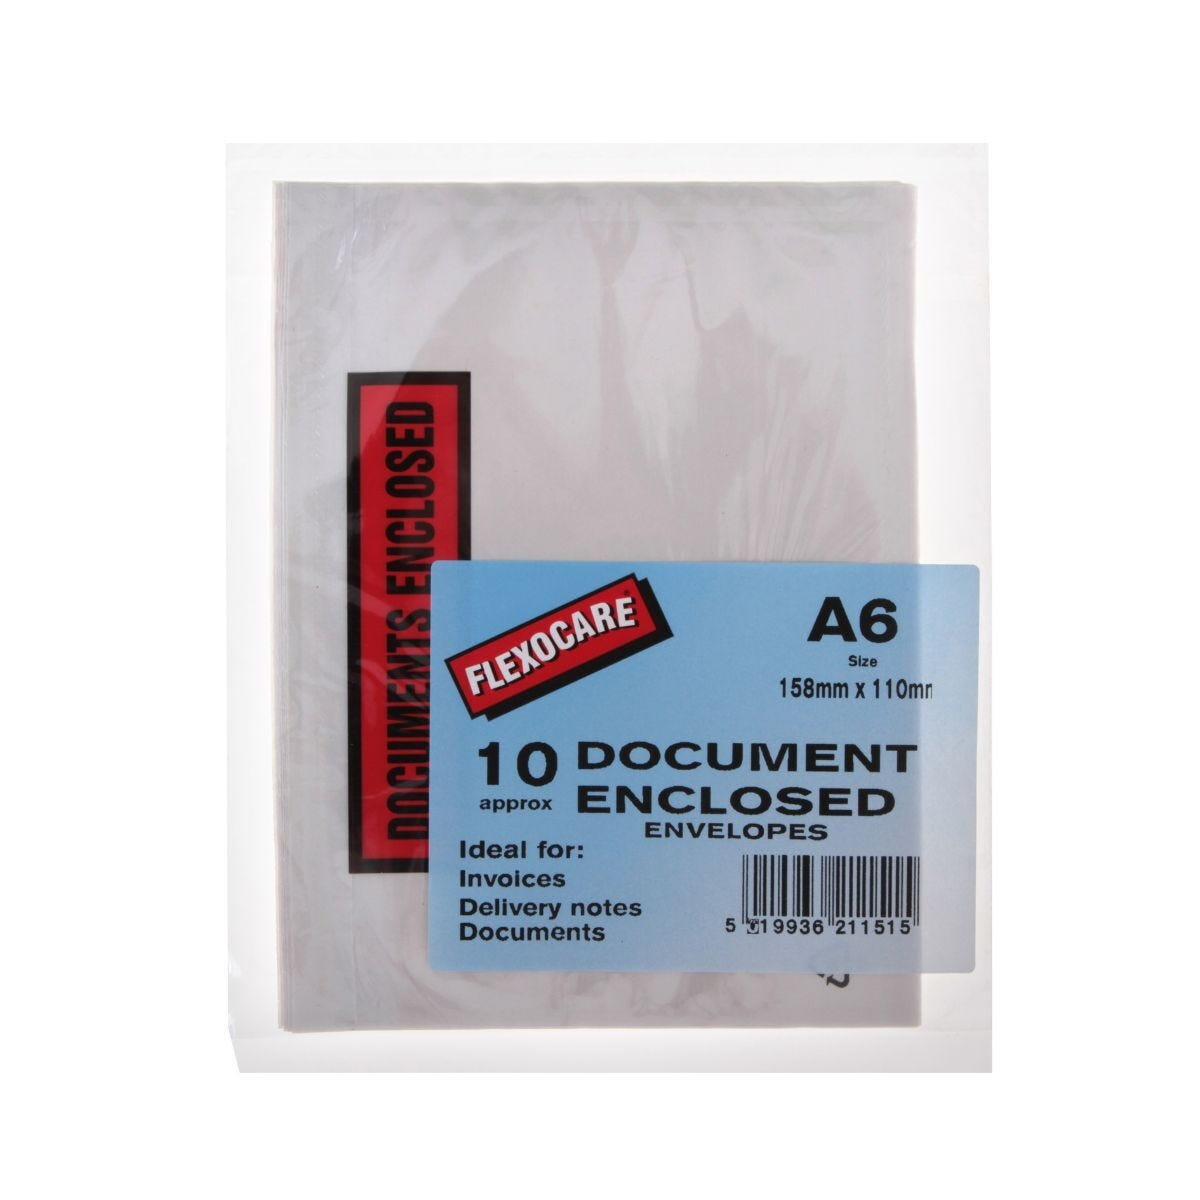 Document Enclosed Envelopes A6 Pack of 10